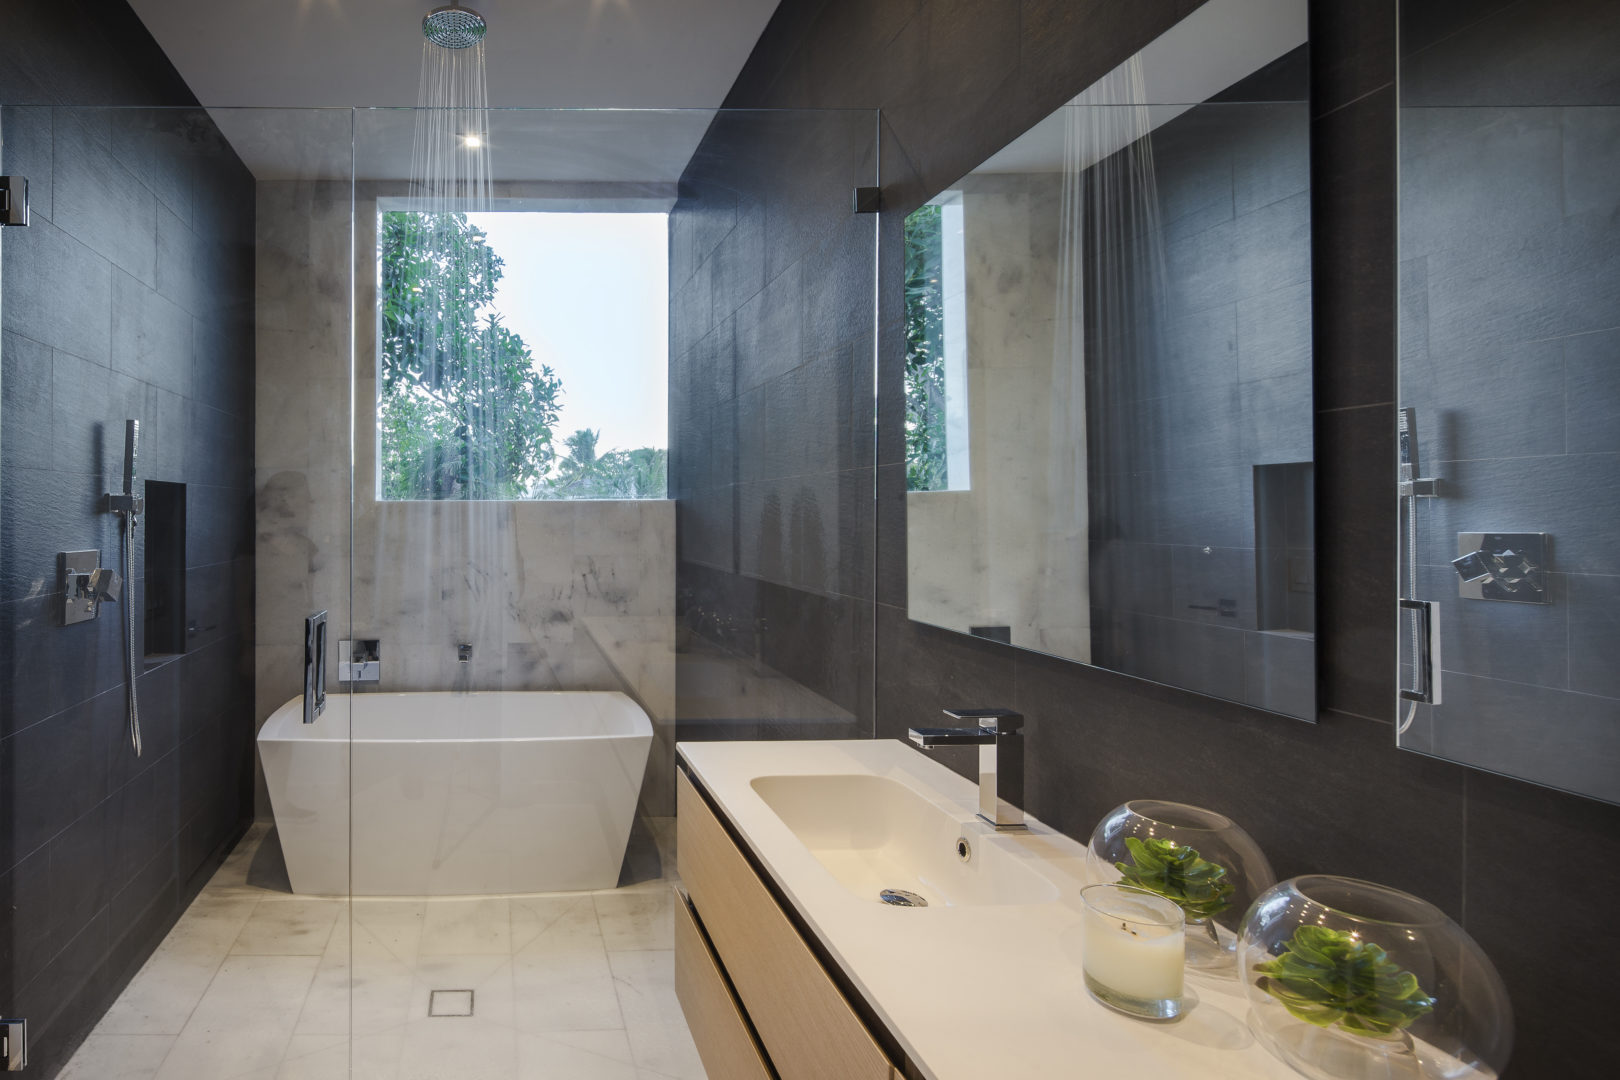 Miami Home Architecture Construction Residence Builder Contractor master bathroom modern new interior design